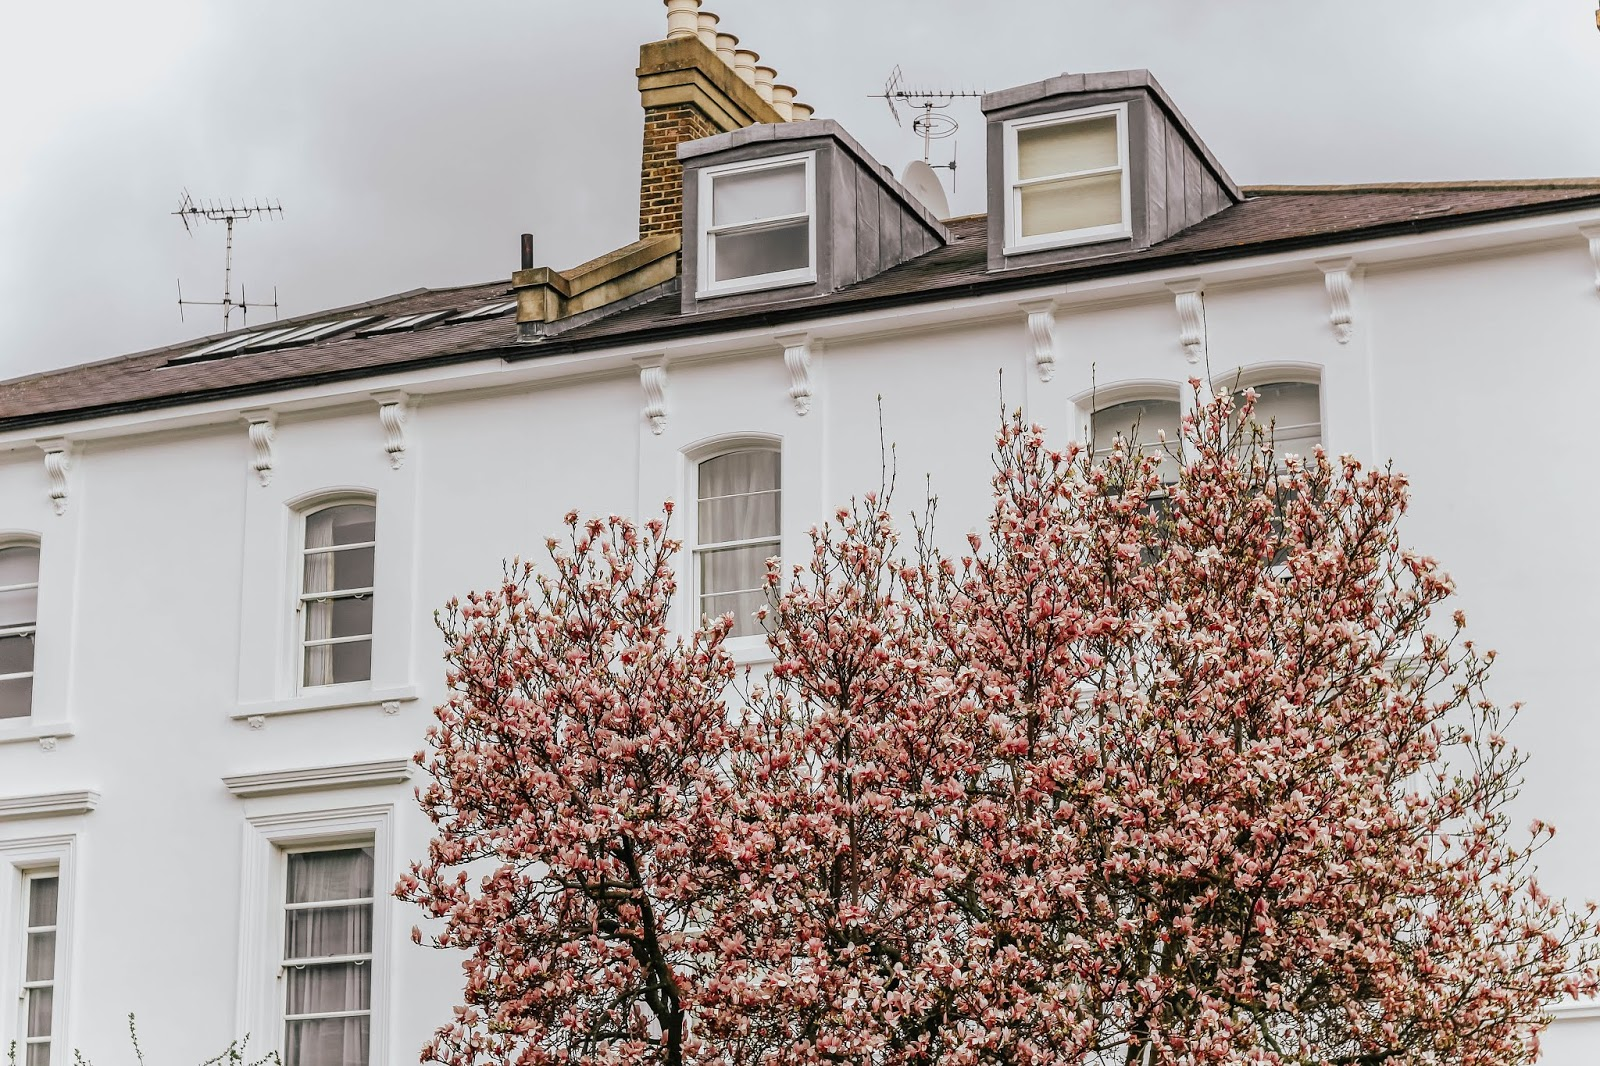 London pink blossom trees 2019 Spring